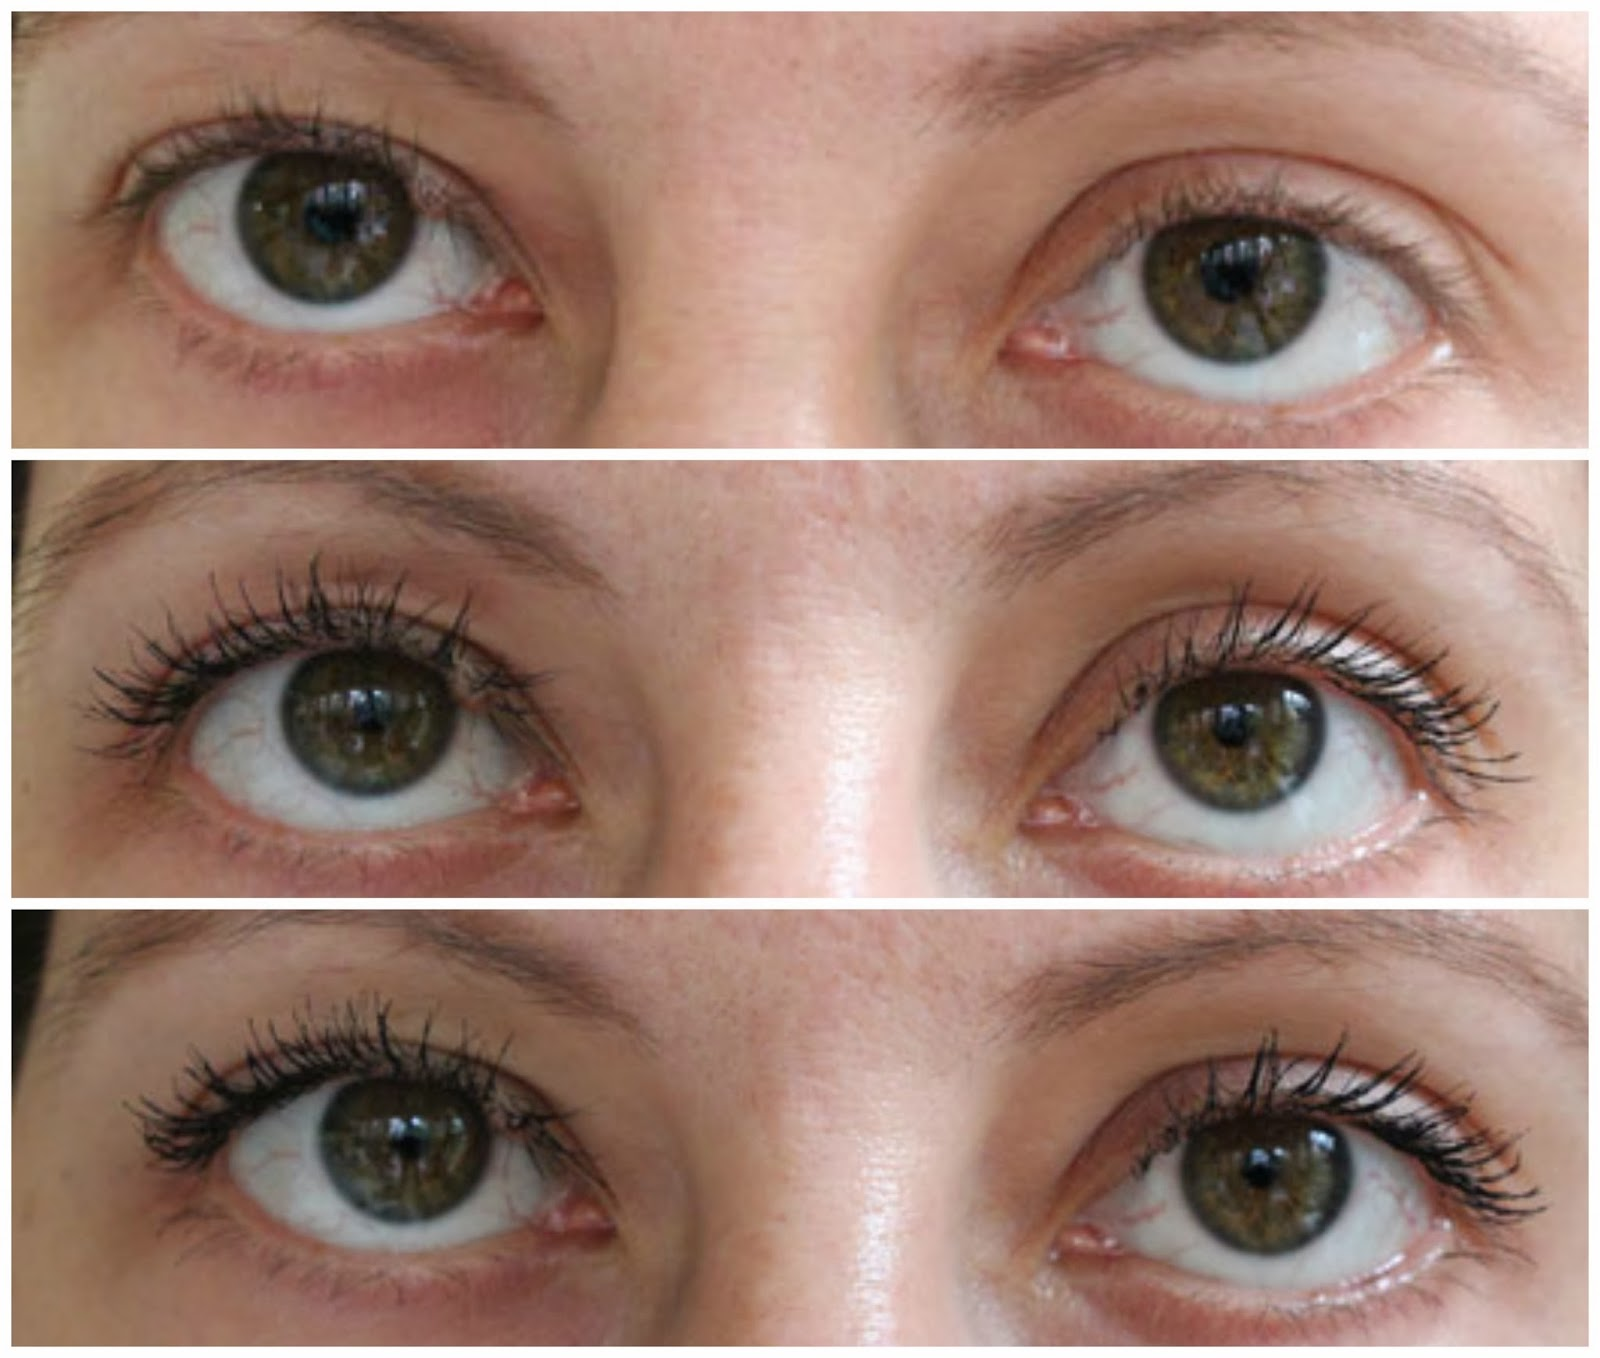 0ad4f-toofaced-betterthansexmascara-collage-0004.jpg